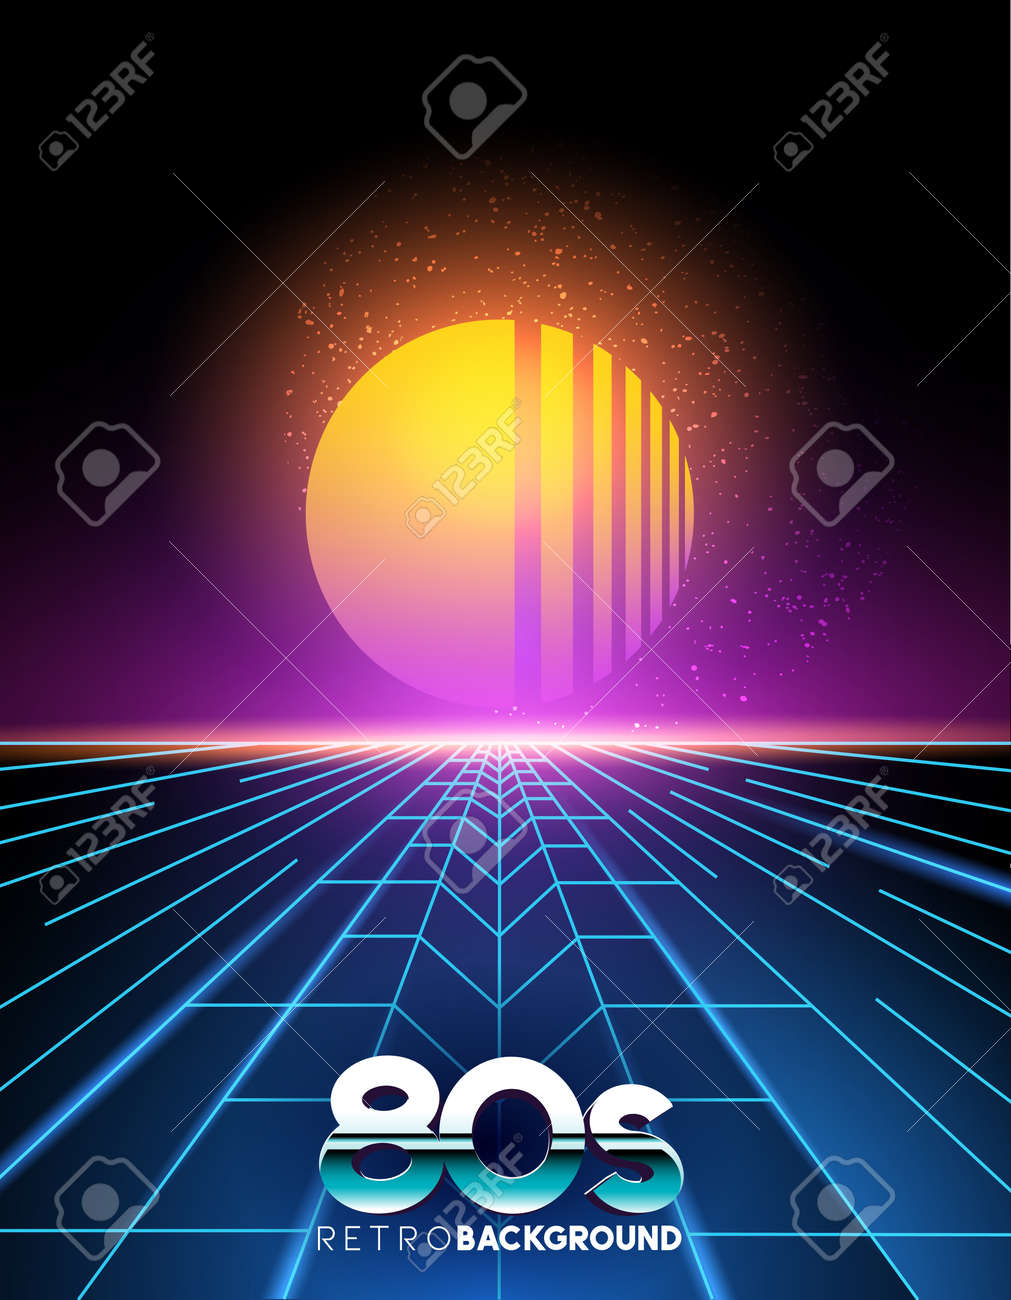 retro 1980's style neon digital abstract background with laser beams and a sunset. - 70737527